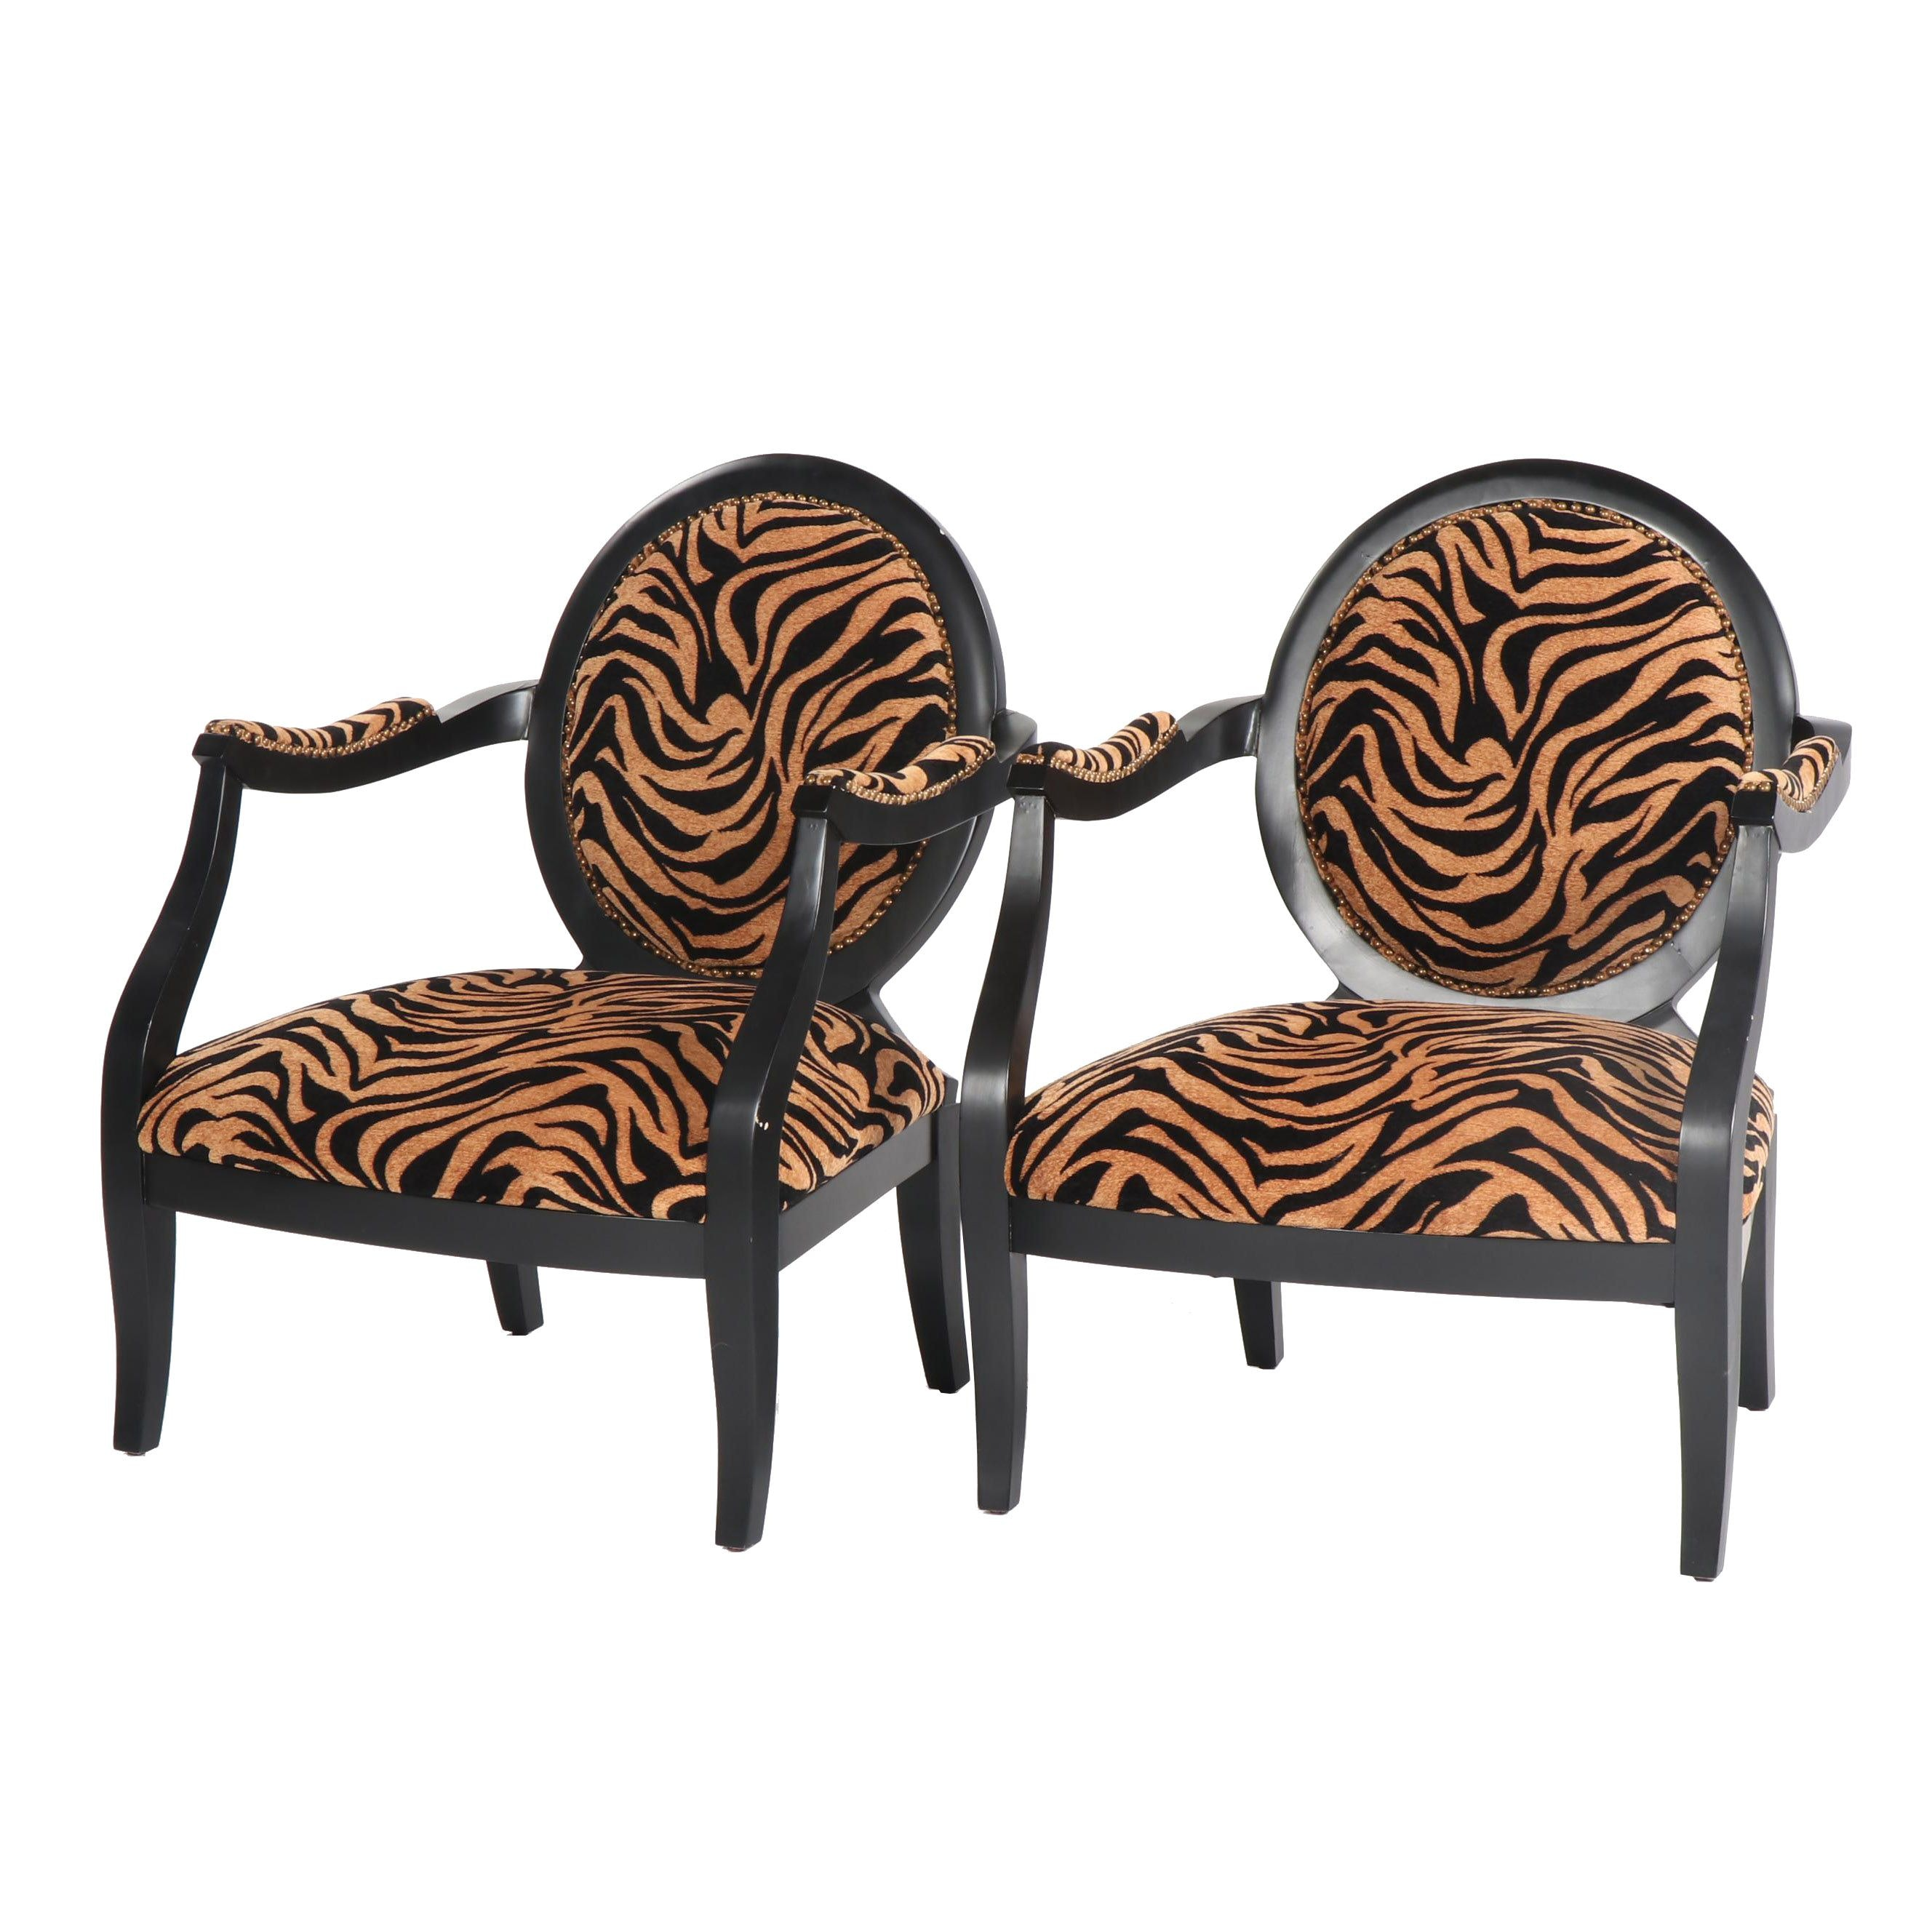 Upholstered Painted Wood Fauteuil Pair, 21st Century